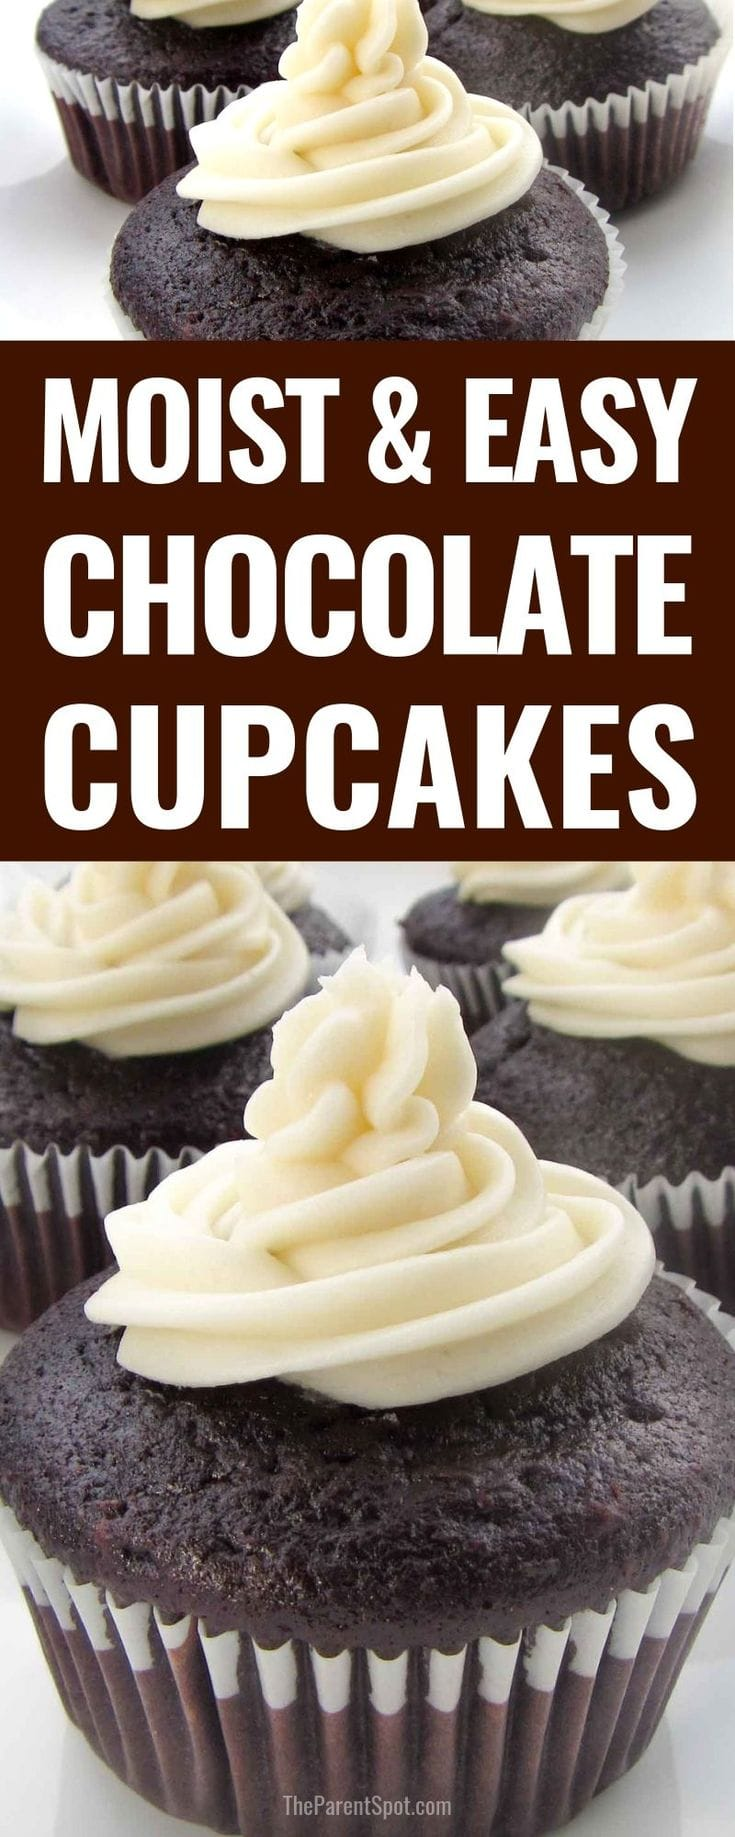 most and easy chocolate cupcakes